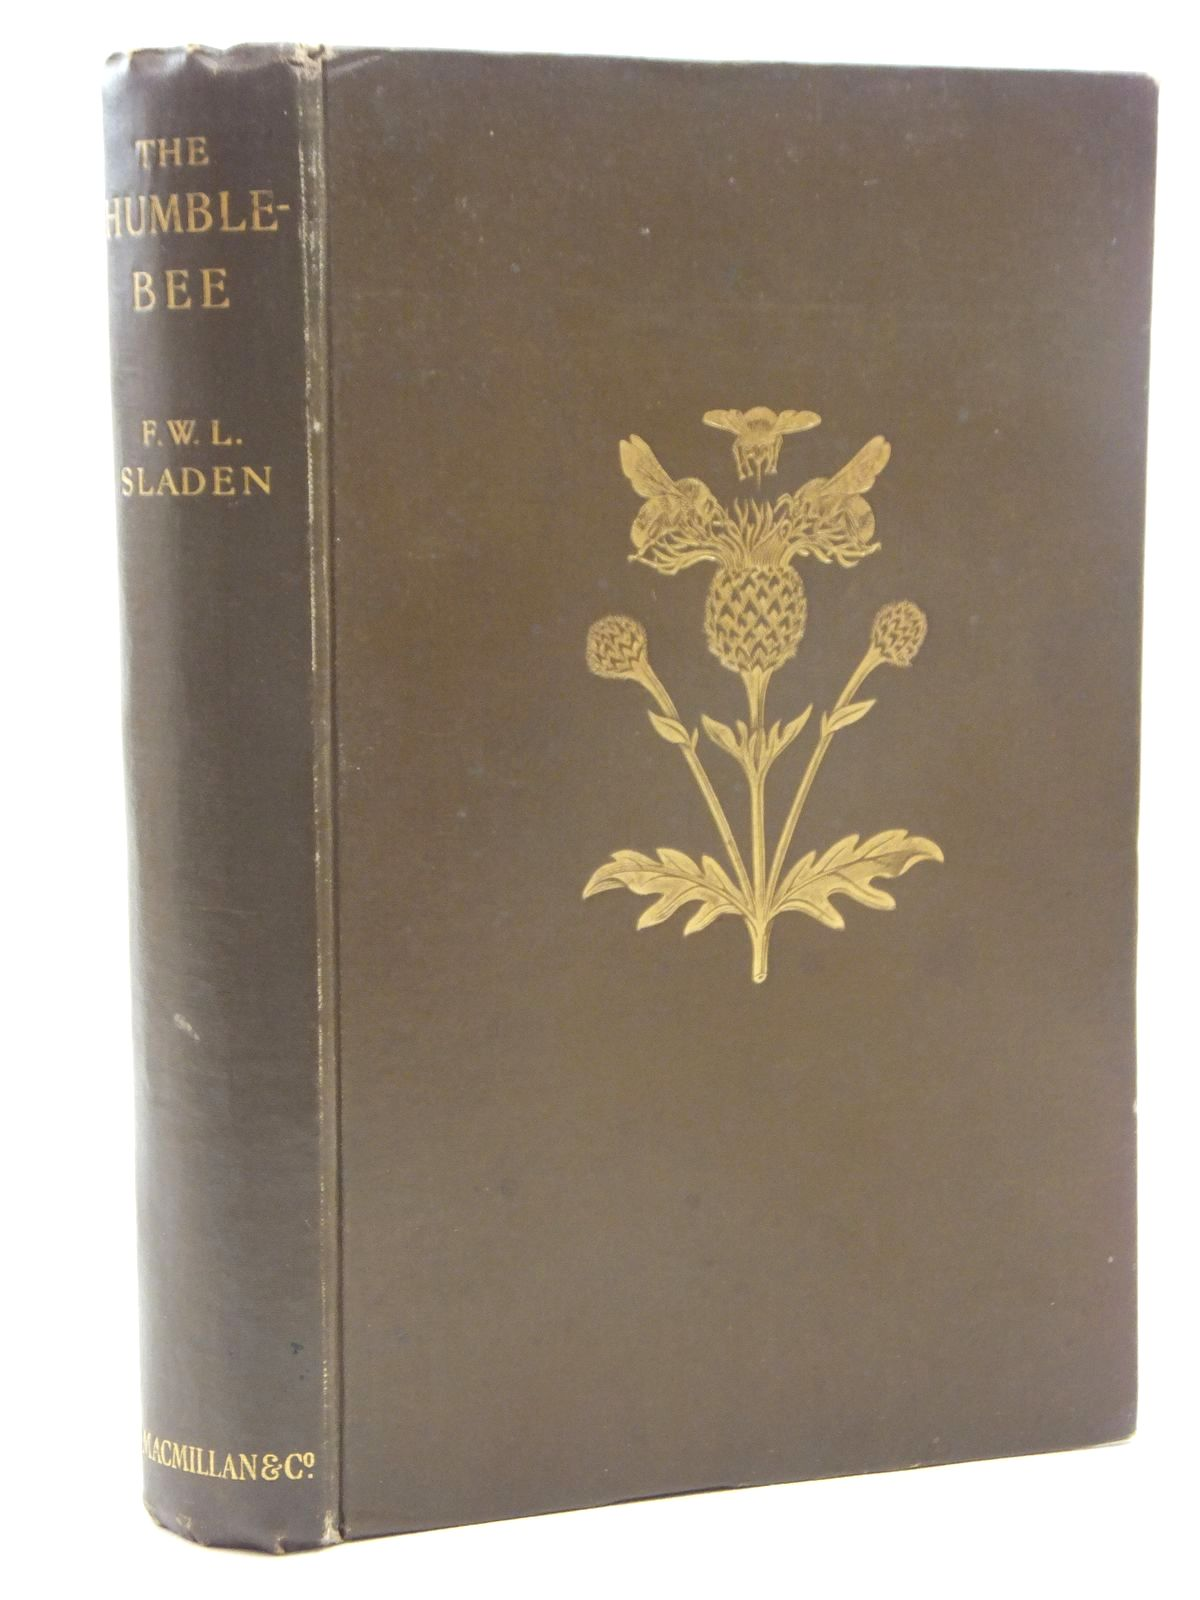 Photo of THE HUMBLE-BEE written by Sladen, F.W.L. published by Macmillan & Co. Ltd. (STOCK CODE: 2123540)  for sale by Stella & Rose's Books